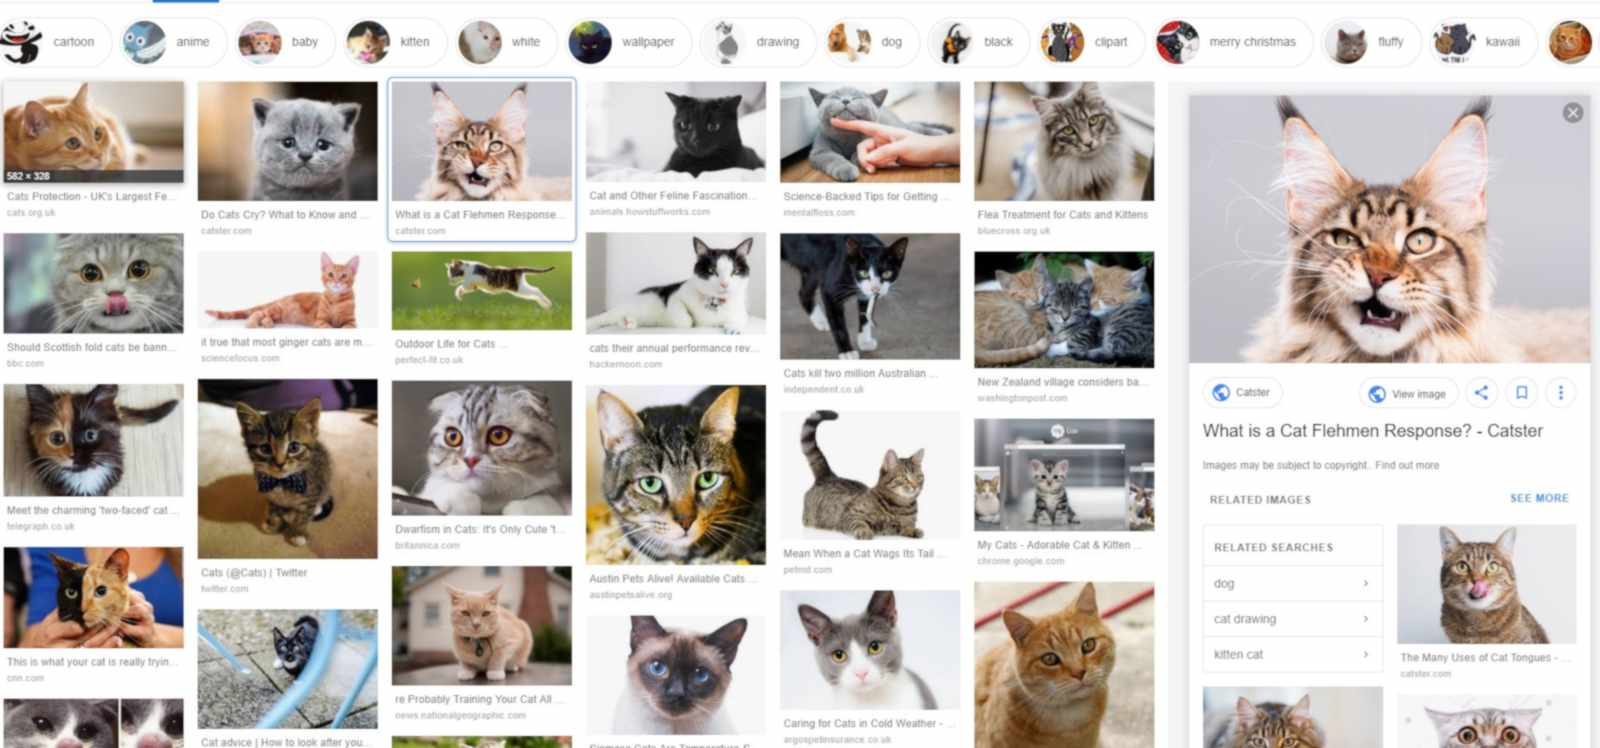 Google Images Gets New Image Preview Design